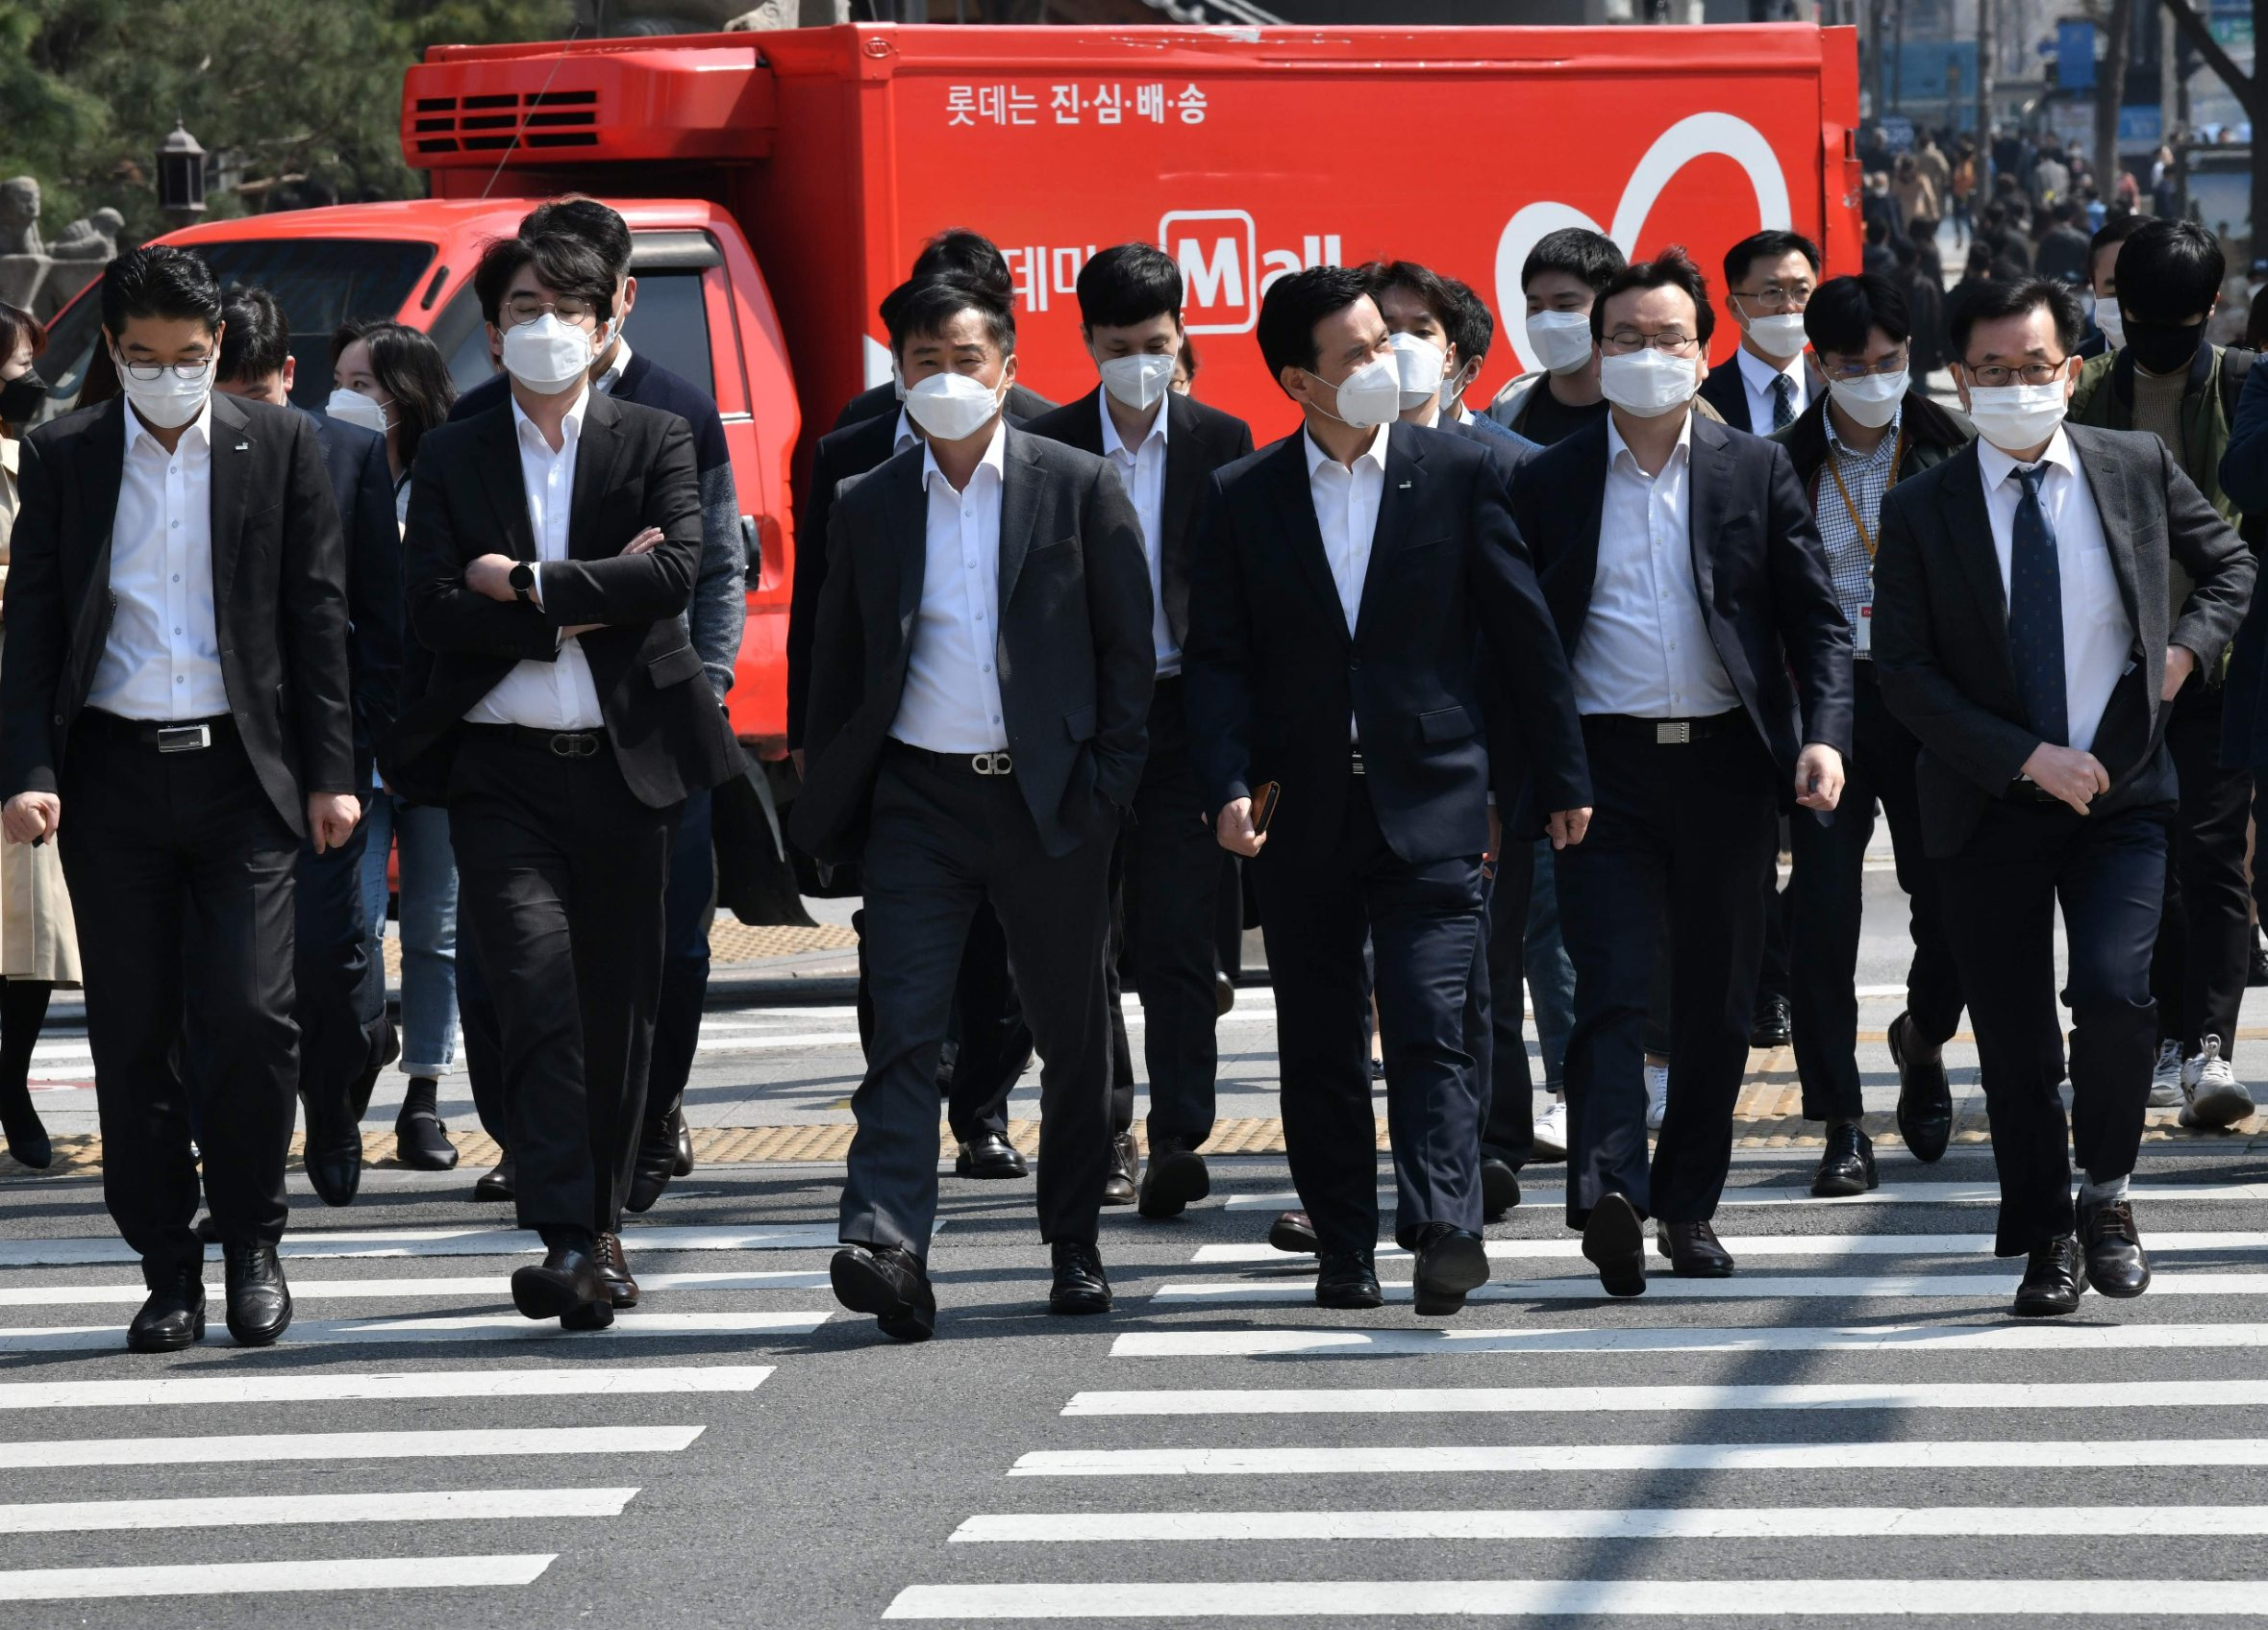 People wearing face masks cross the road in downtown Seoul on March 25, 2020. (Photo by Jung Yeon-je / AFP)